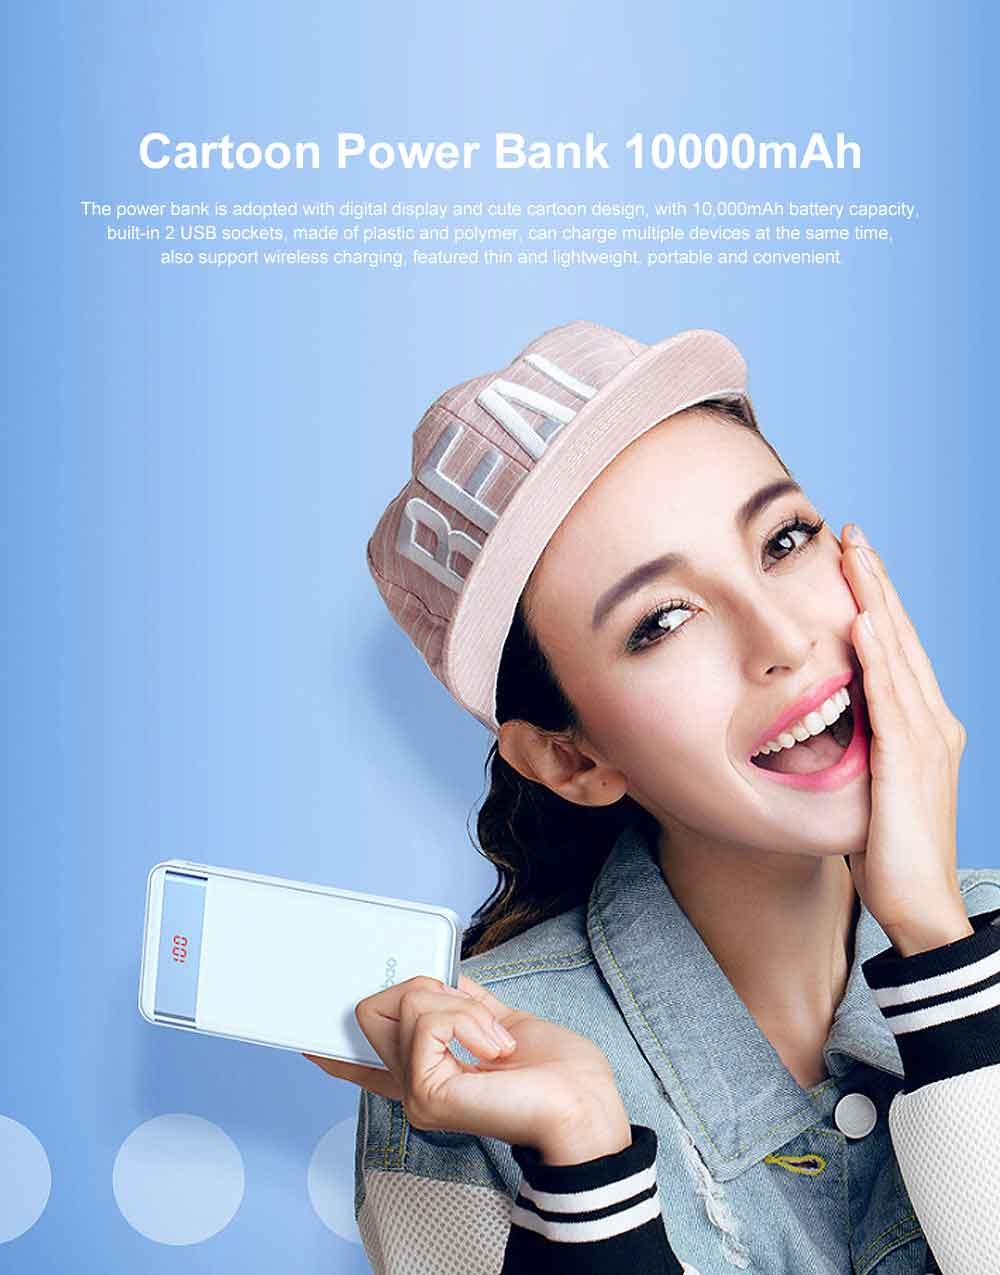 Cute Cartoon Slim Power Bank Digital Display Portable External Battery Colorful Charger Fast Charging for Cell Phone 10000mAh 0